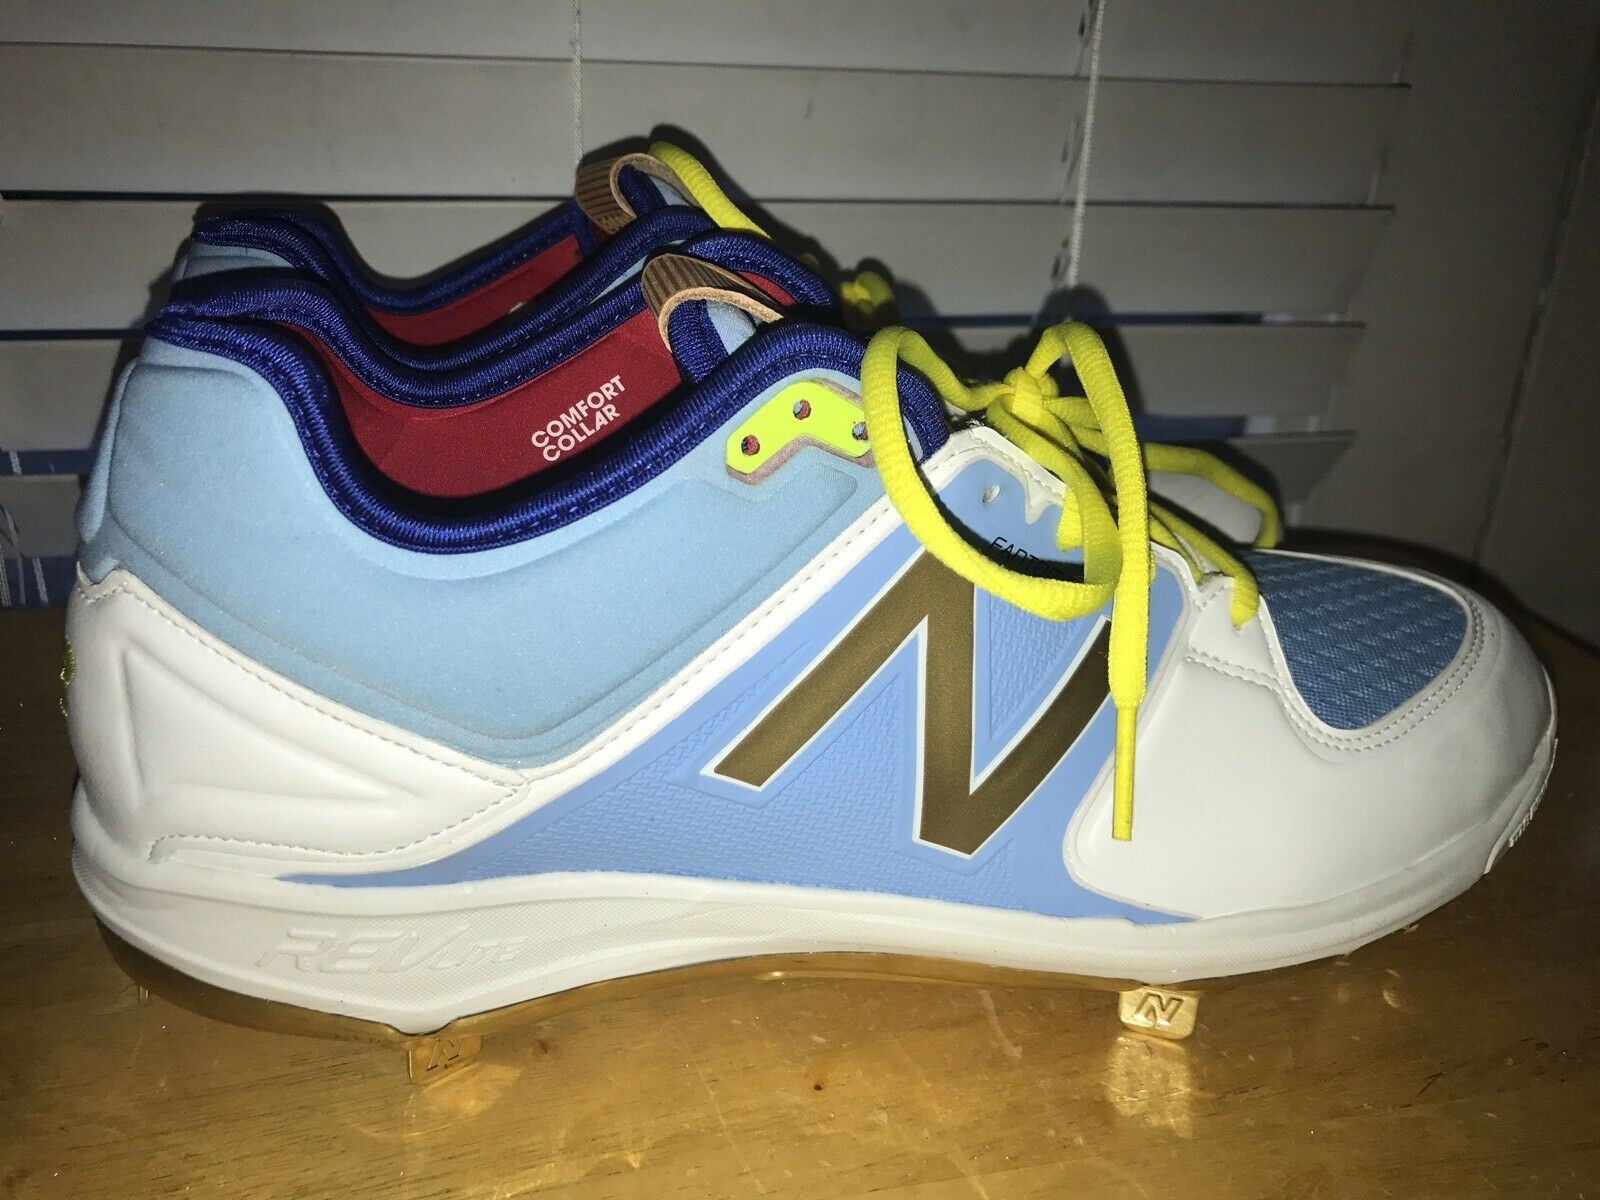 MUST SEE SEE SEE 2018 NWOT BASEBALL New Balance LM3000G3 12.5 D 44bf9c